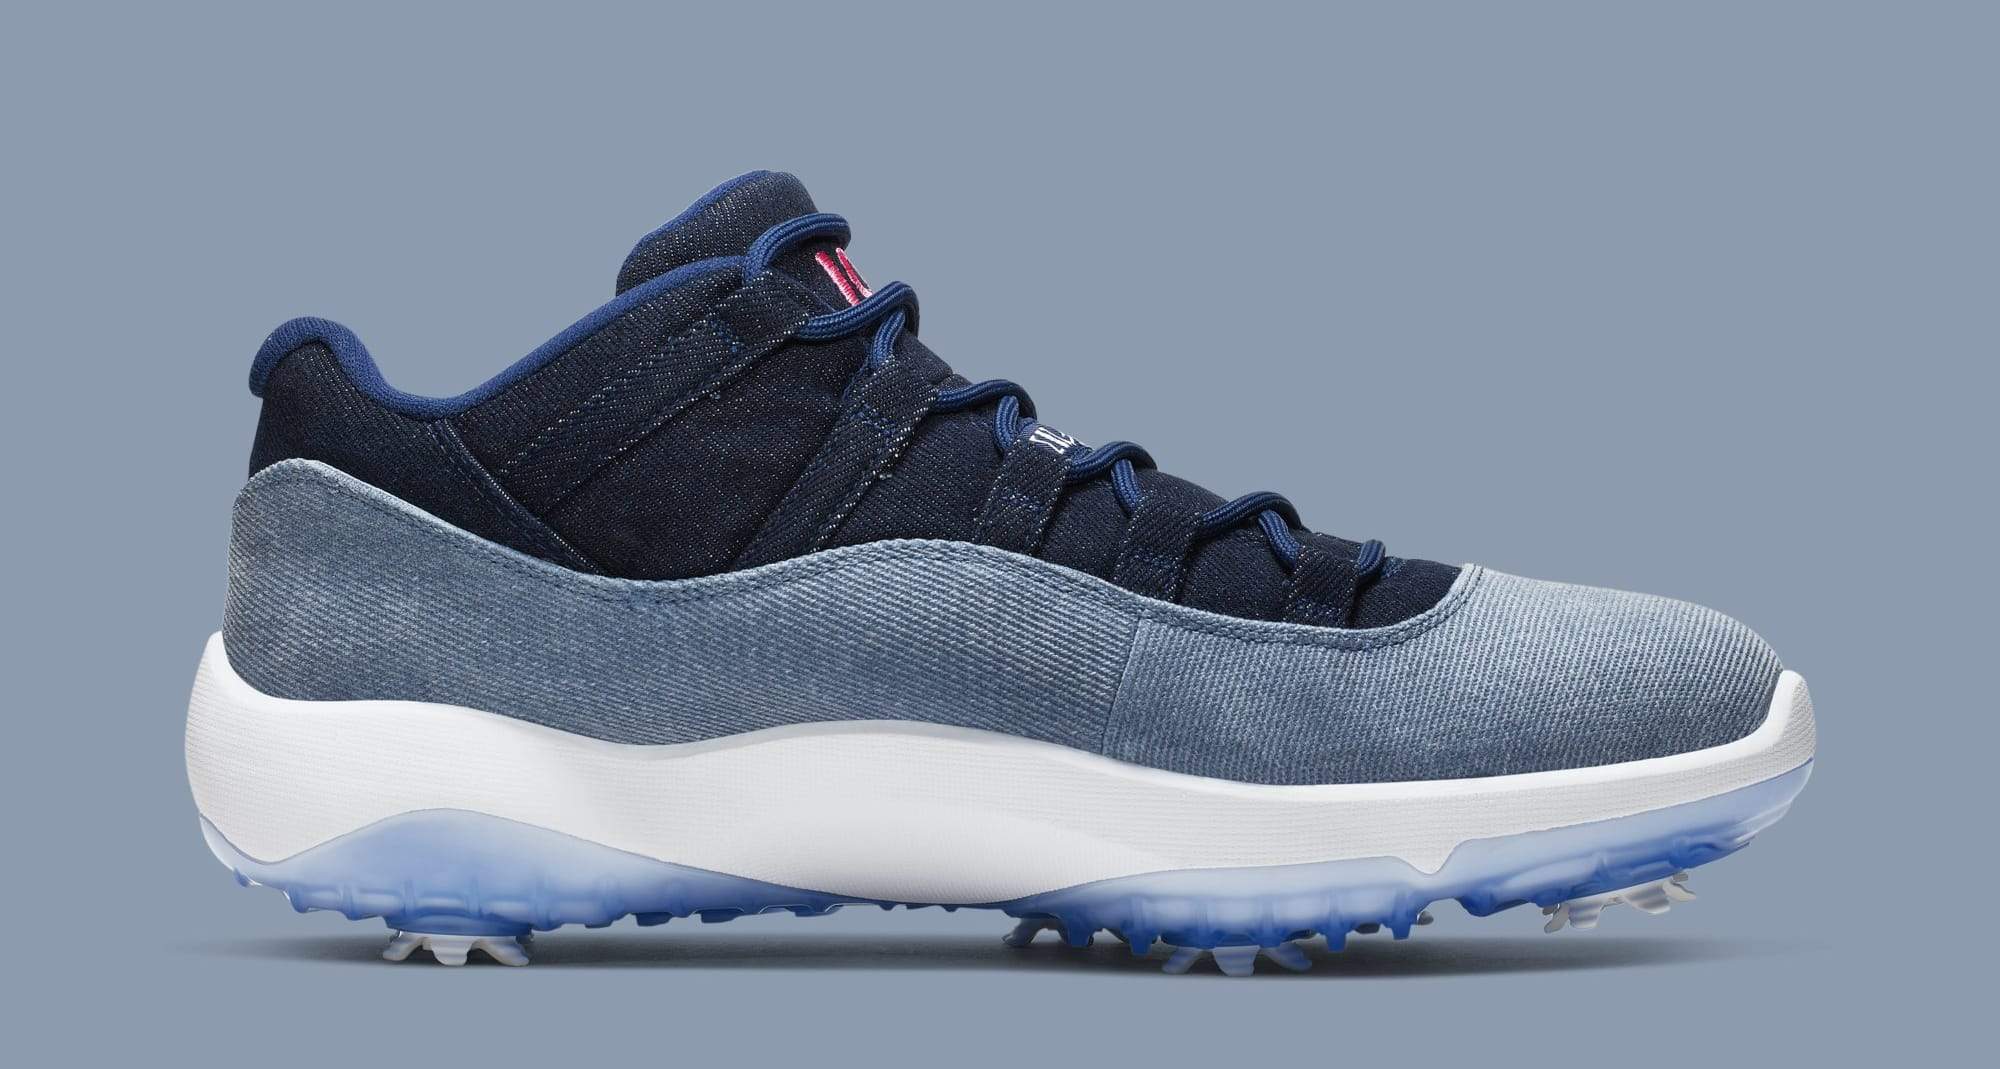 Air Jordan 11 Golf 'Denim' AQ0963-400 (Medial)